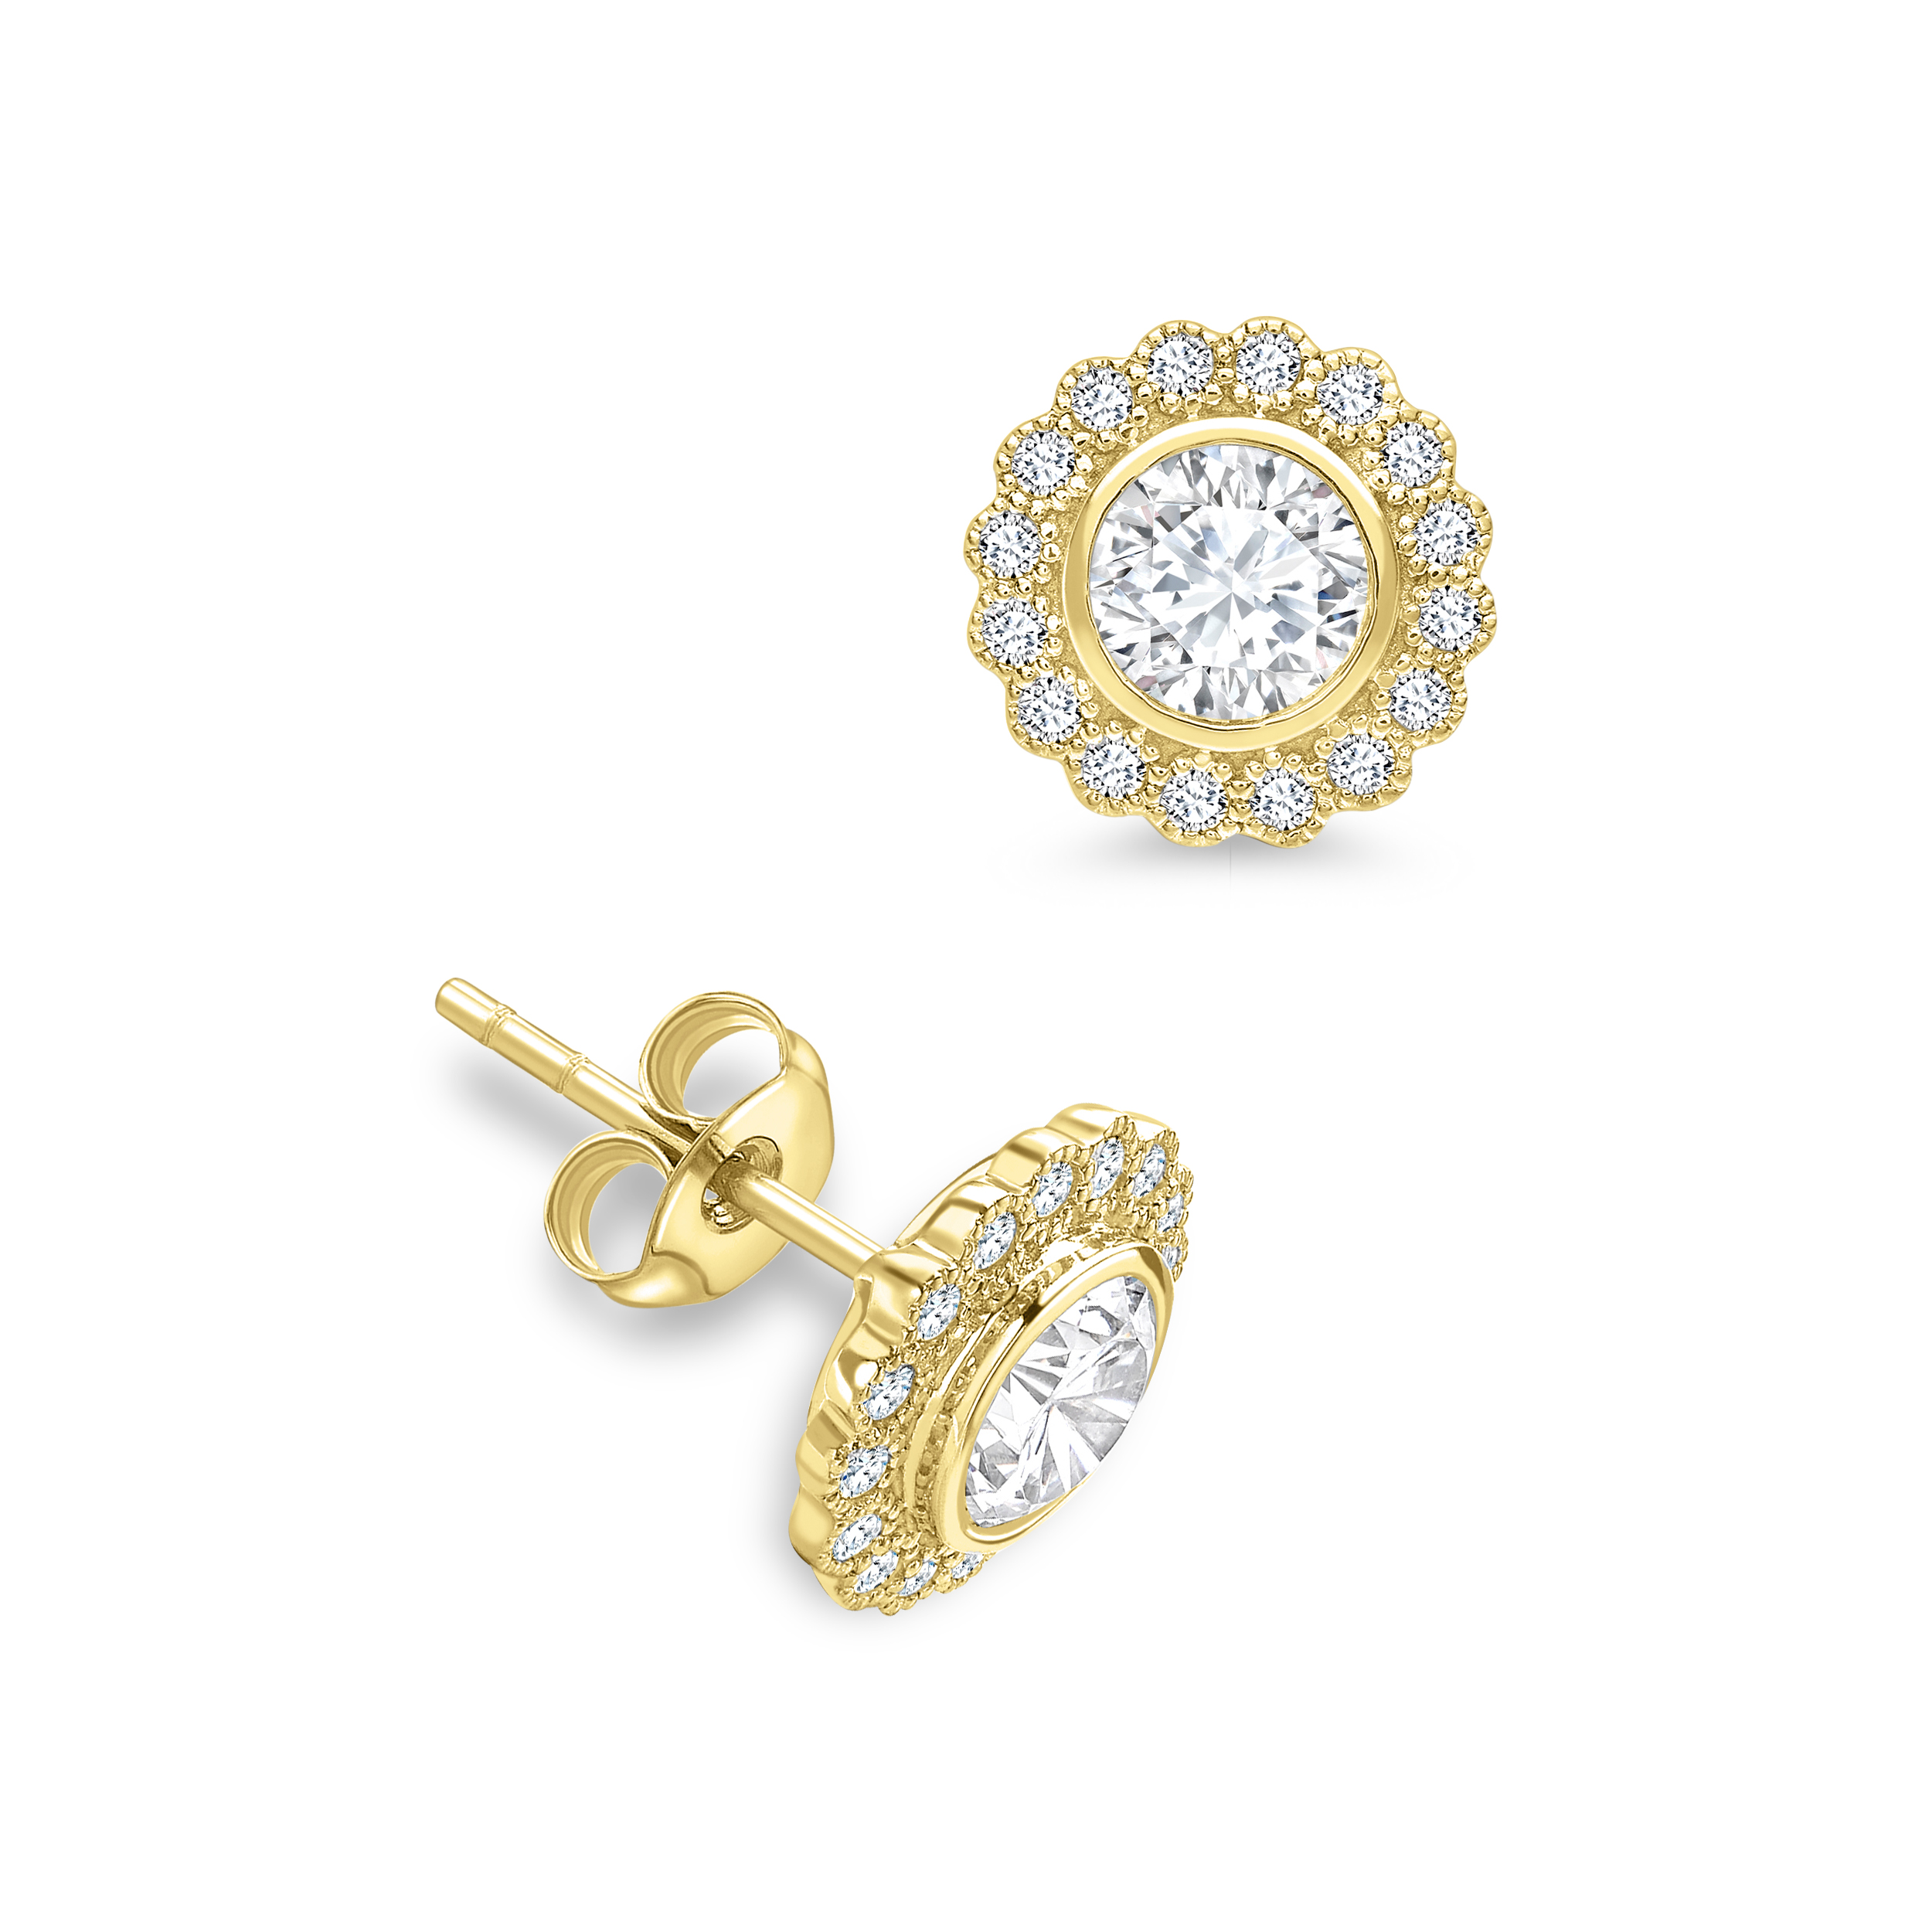 Round Shape Milligrain Halo Diamond Earrings Available in White, Yellow, Rose Gold and Platinum